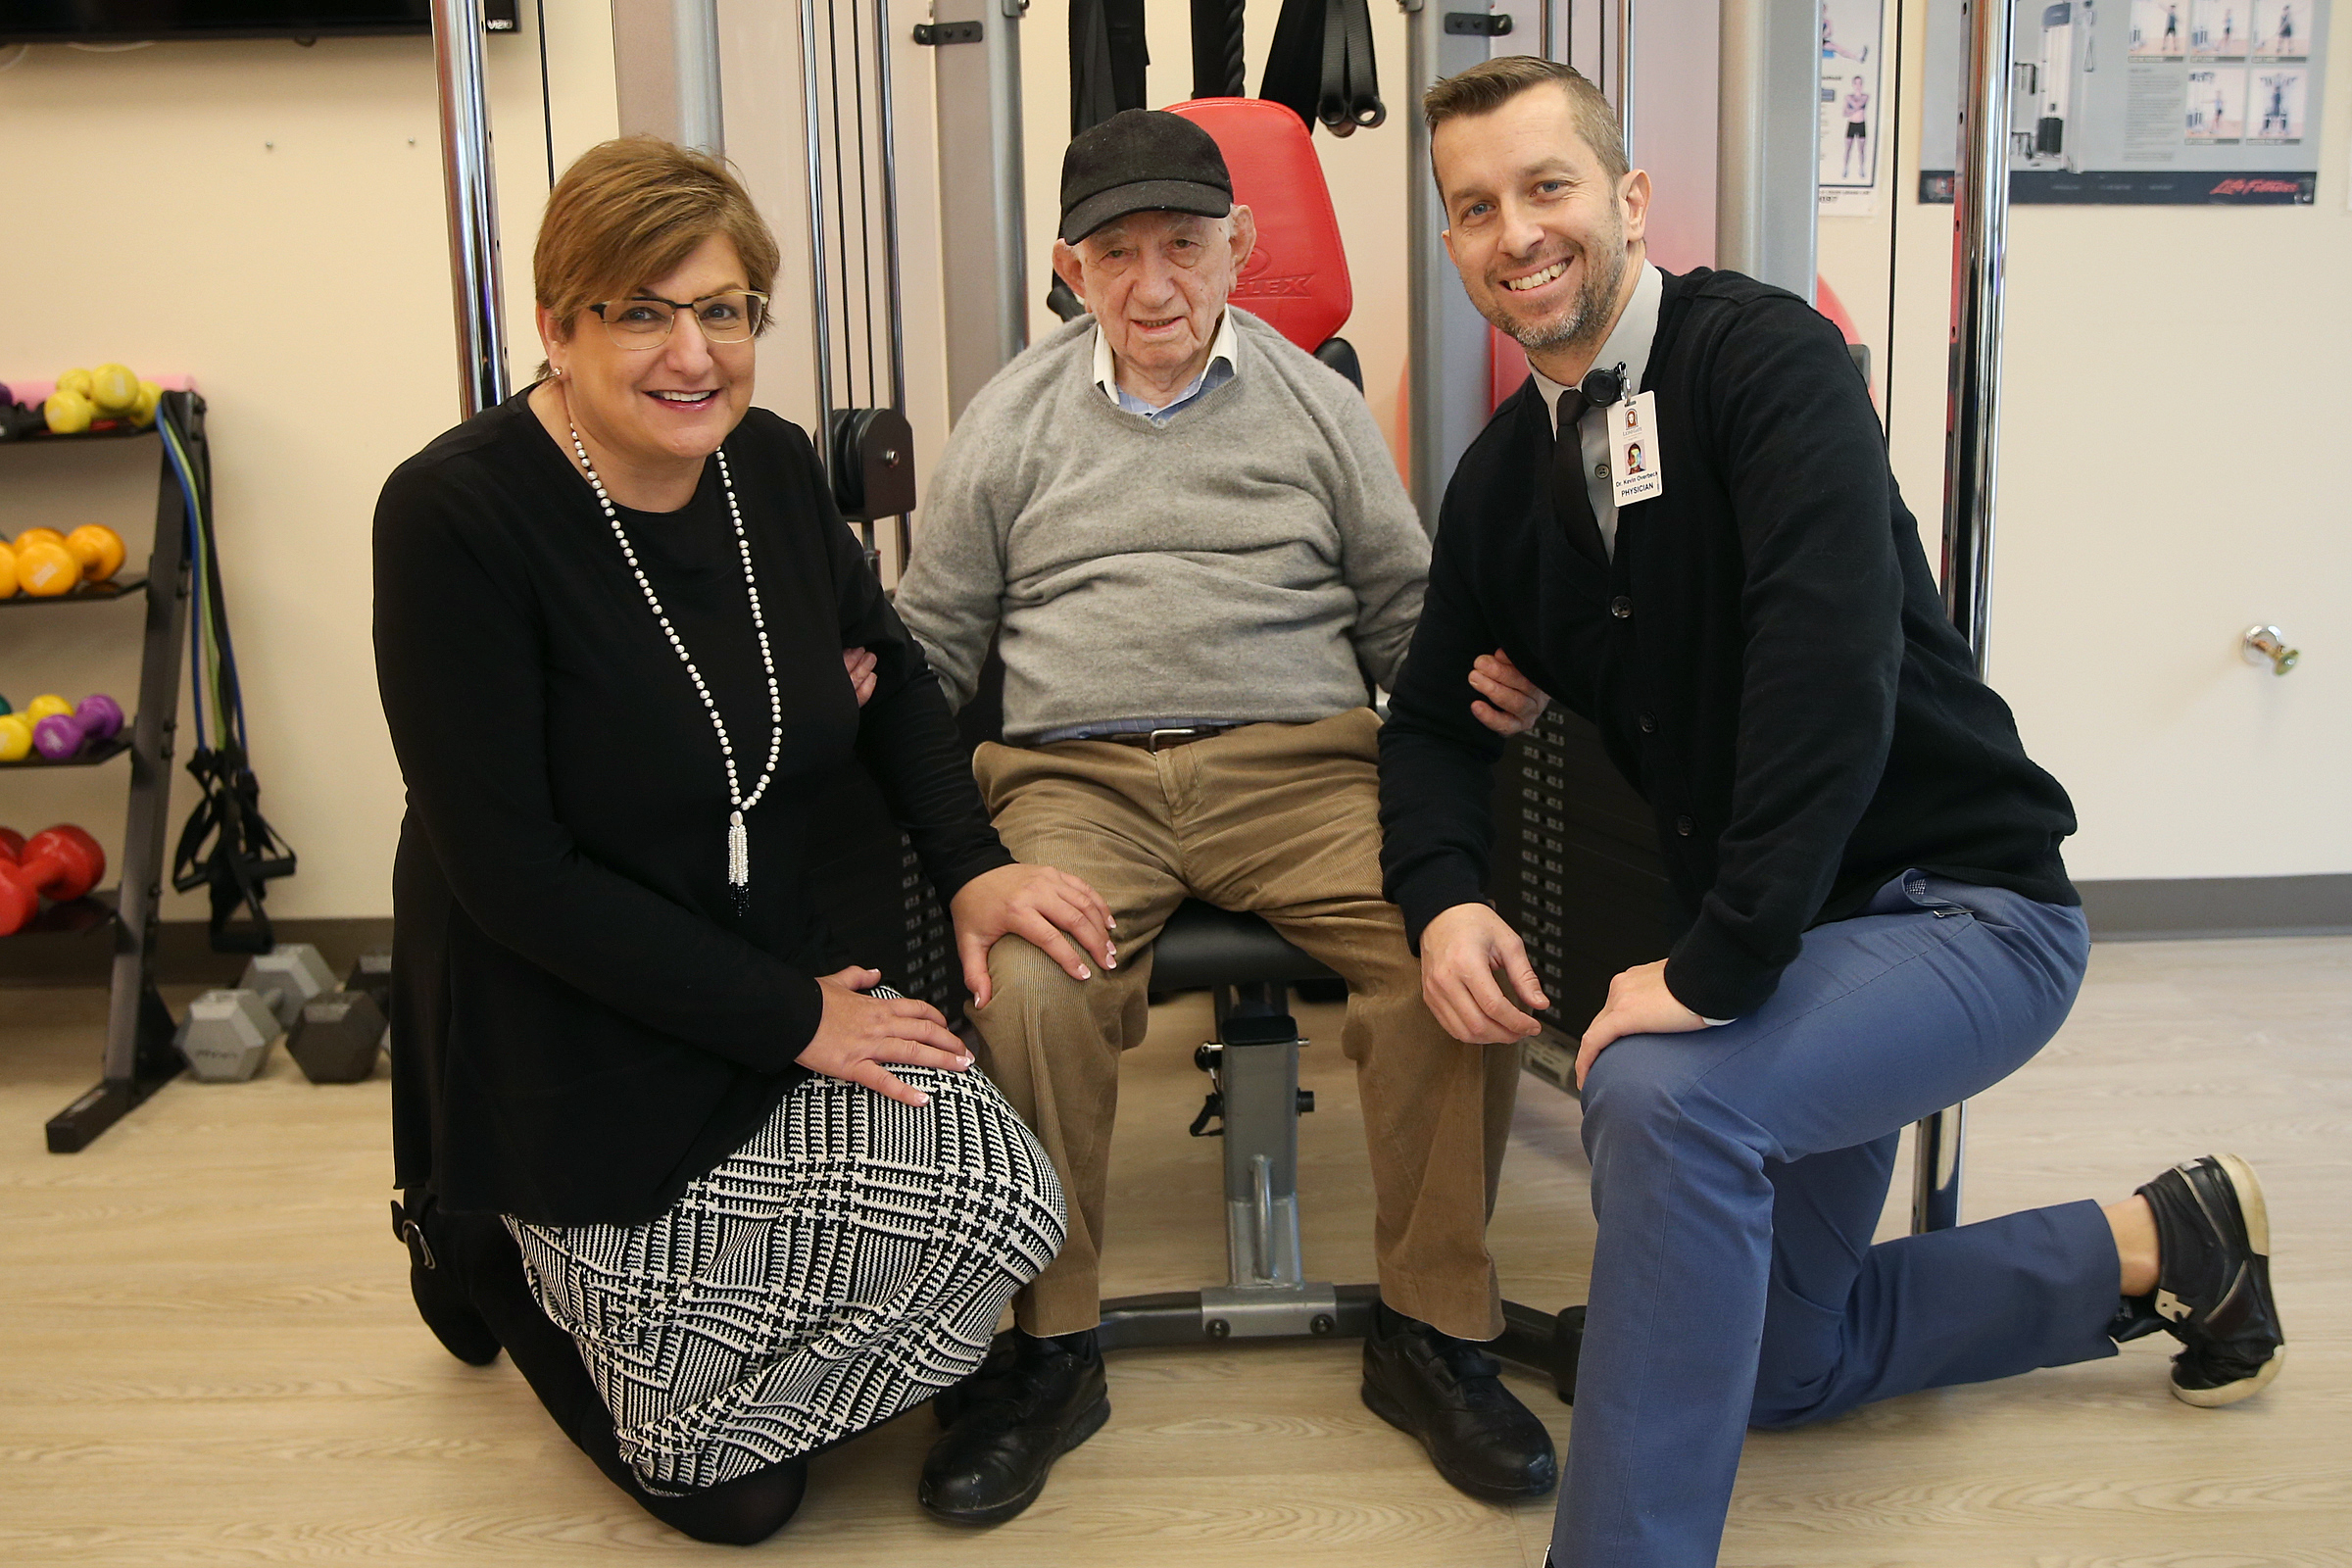 From left, Susan Love, CEO of Jewish Senior Housing and Healthcare Service; Yehuda Hammer, 101; and Kevin Overbeck, a physician at Rowan University´s New Jersey Institute for Successful Aging who works with Hammer, pose for a portrait at the Lions Gate retirement community in Voorhees Township, N.J., on Tuesday, Jan. 30, 2018. TIM TAI / Staff Photographer